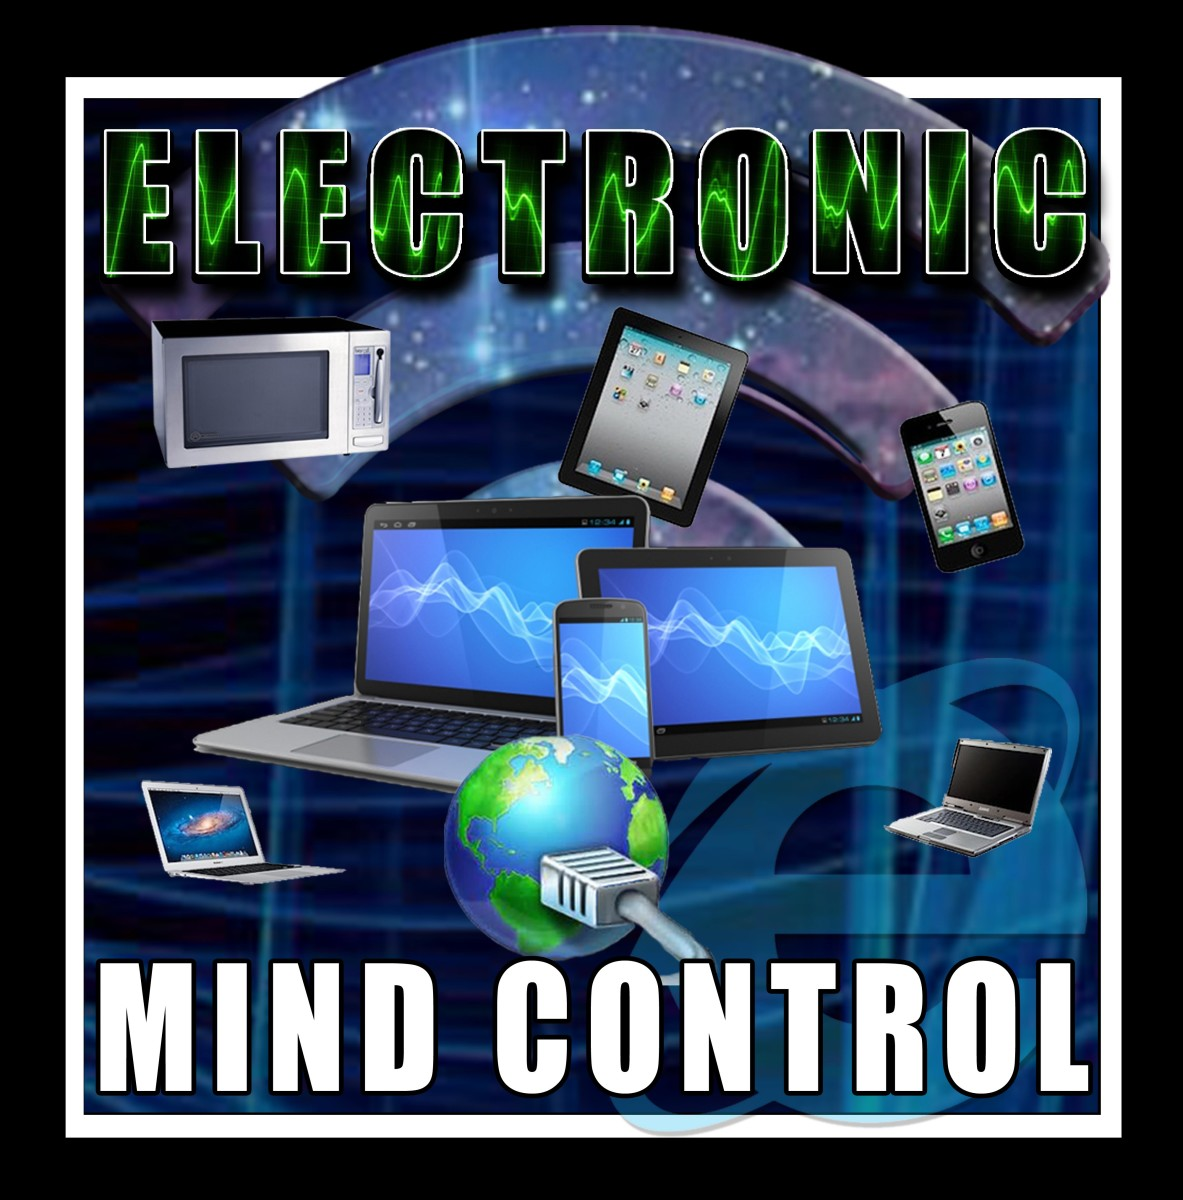 All new electronic devices from refrigerators to smart phones and gaming systems have micro processors embedded in them to broadcast ELF signals directly into your subconscious mind.